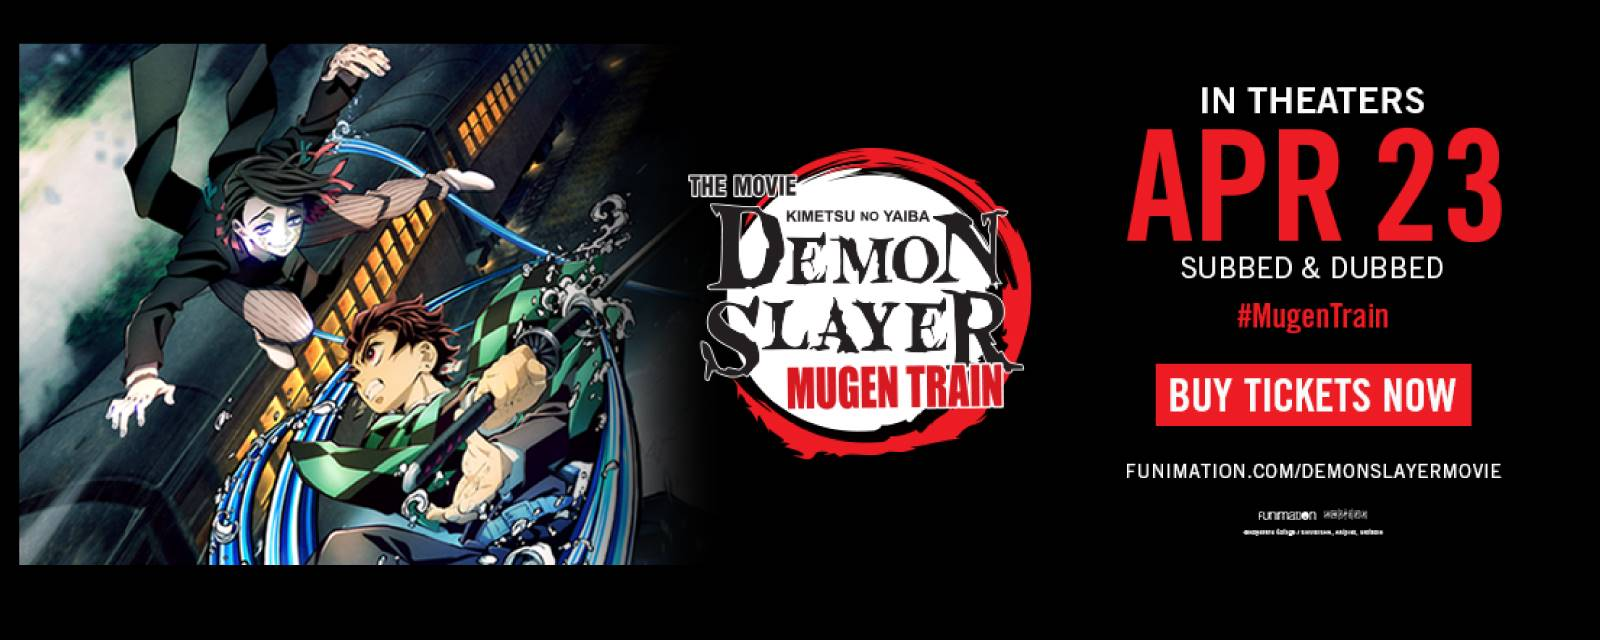 Demon Slayer The Movie: Mugen Train - Subbed